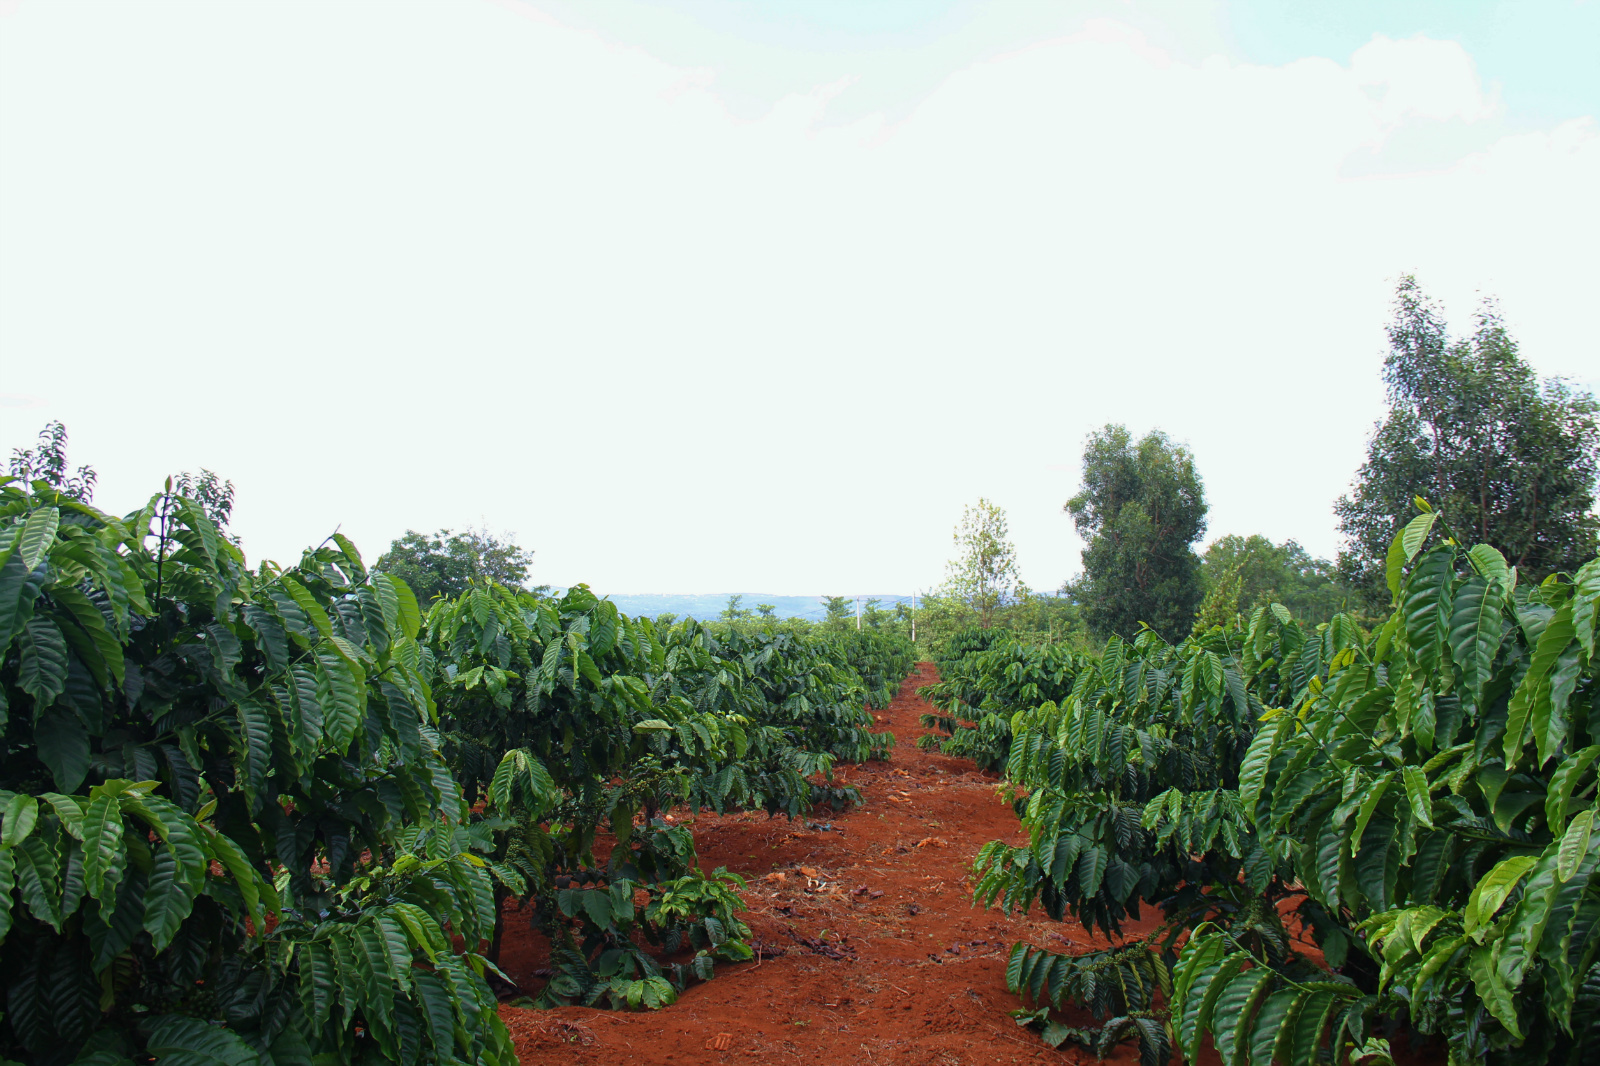 Coffee plants grown in the direct sun in a village near Buon Ma Thuot, central highlands, Vietnam